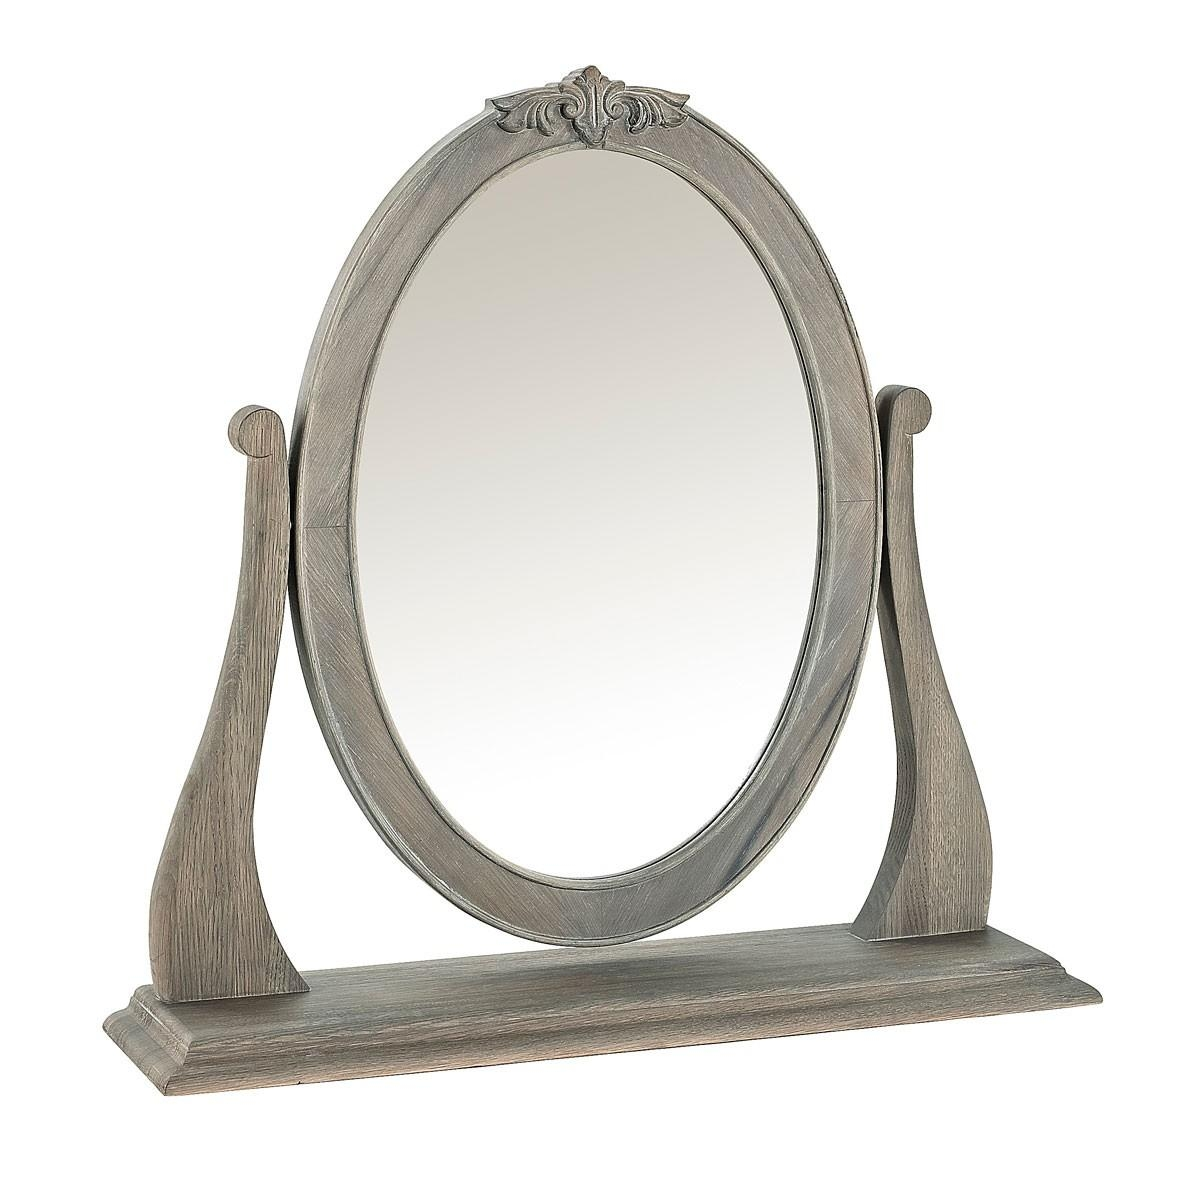 Camille French Style Dressing Table Mirror, Washed Oak | French For Dressing Table Mirrors (Image 3 of 20)